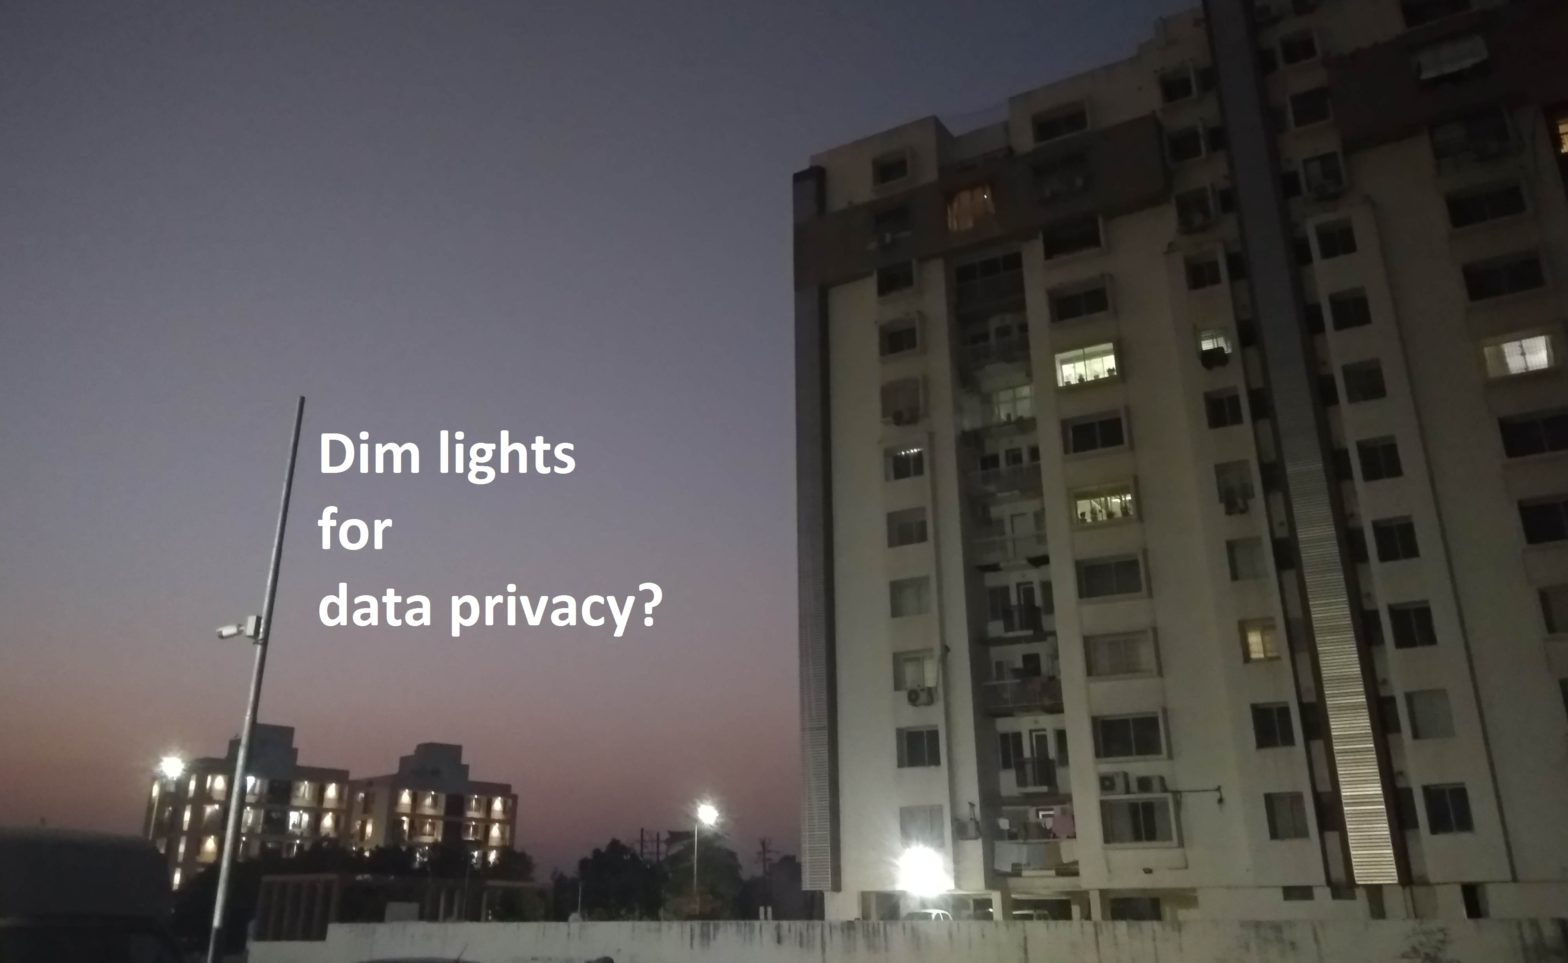 Dim future for data privacy?